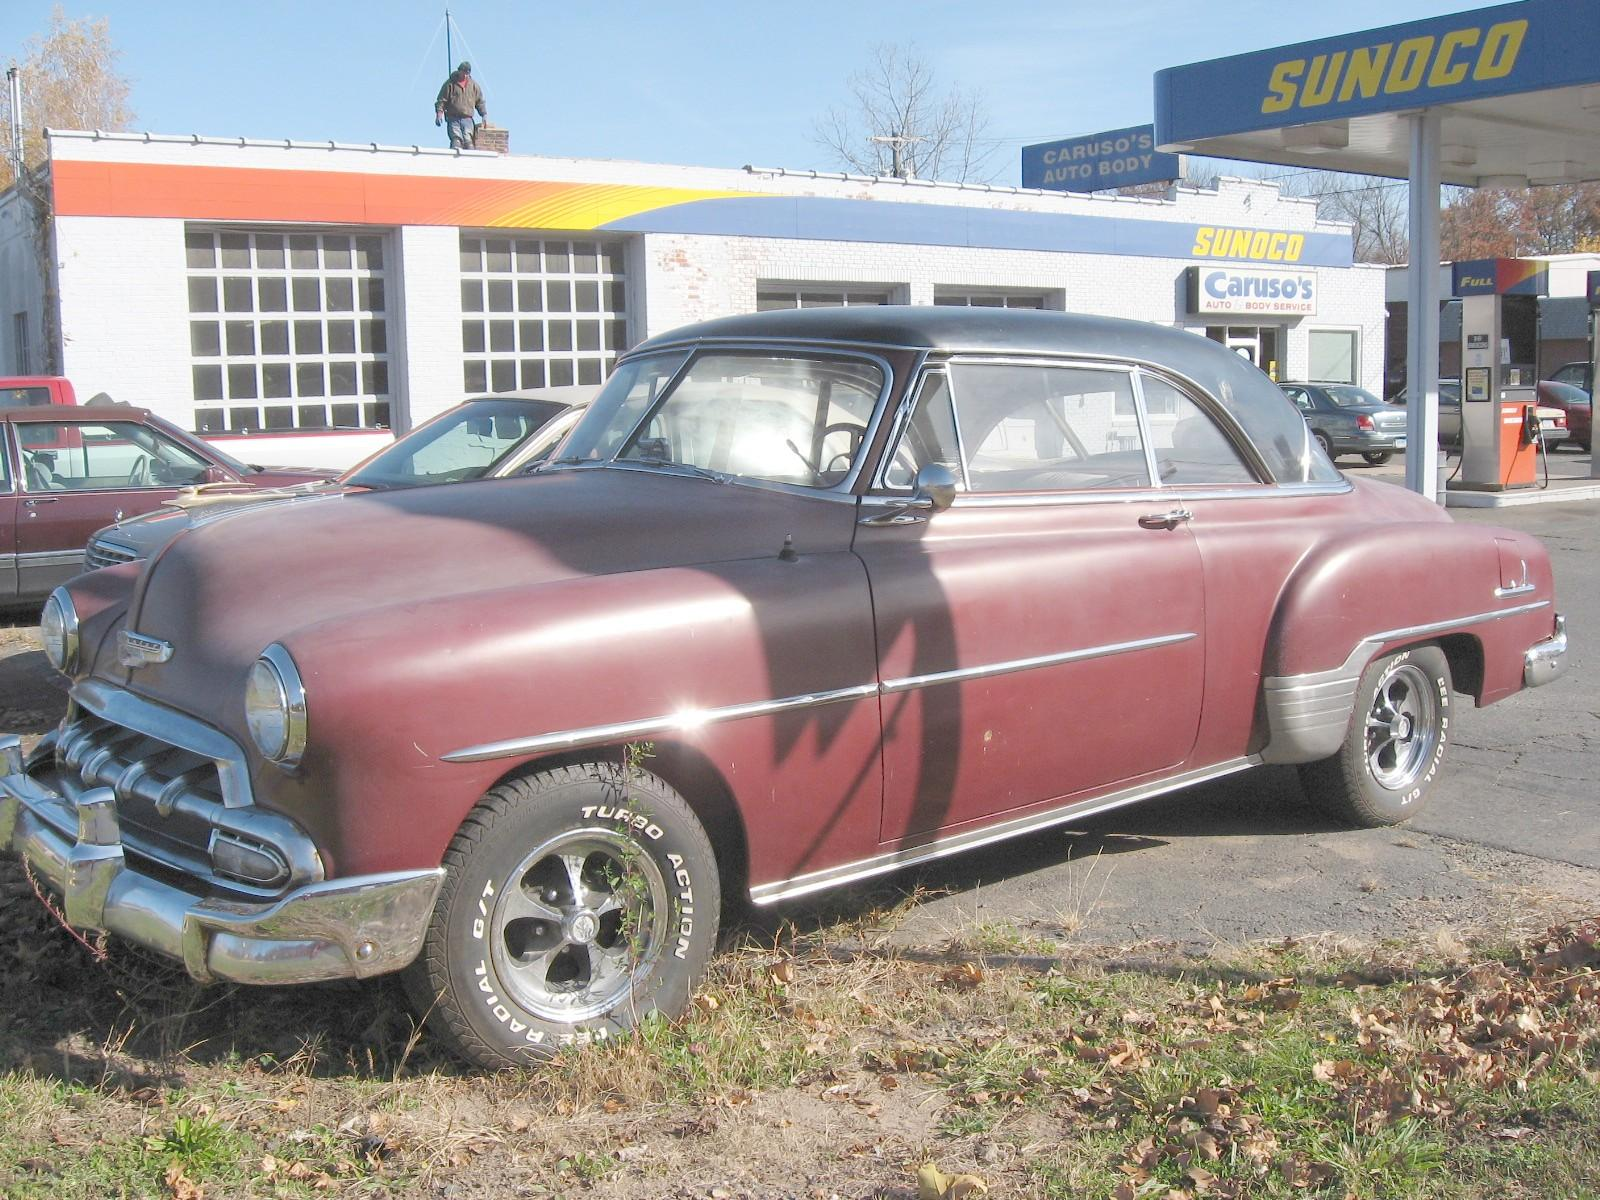 556779's 1952 Chevrolet Bel Air